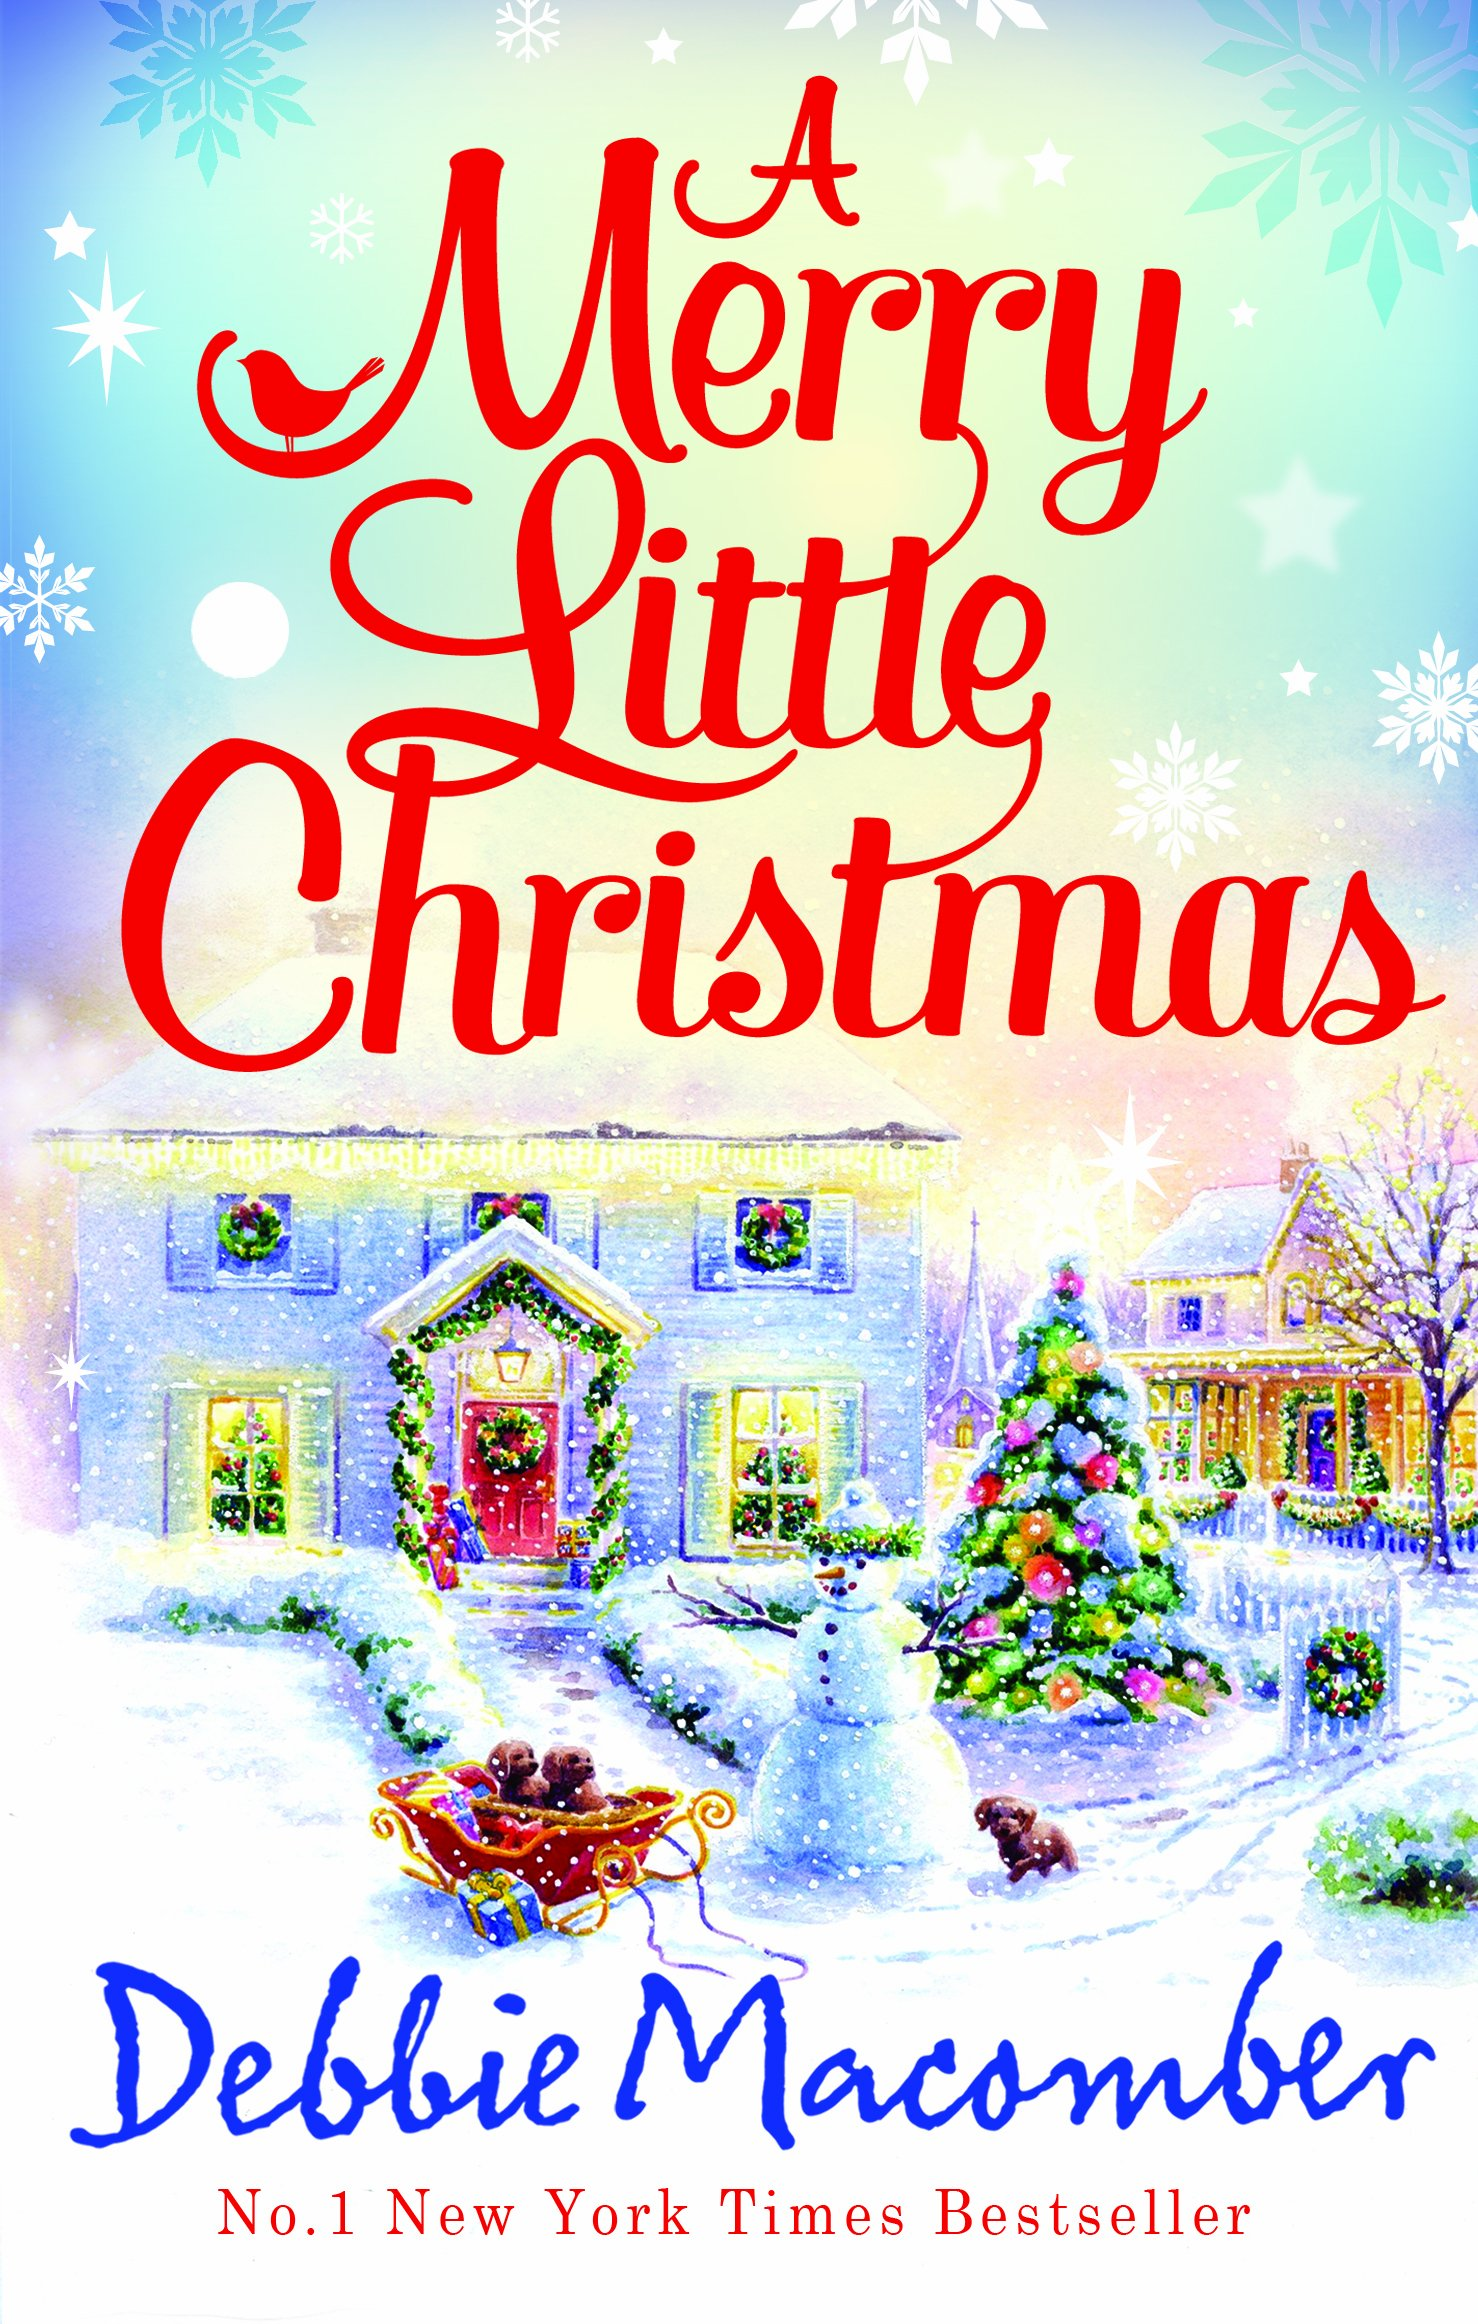 a merry little christmas 1225 christmas tree lane 5 b poppy lane debbie macomber 9781848451445 amazoncom books